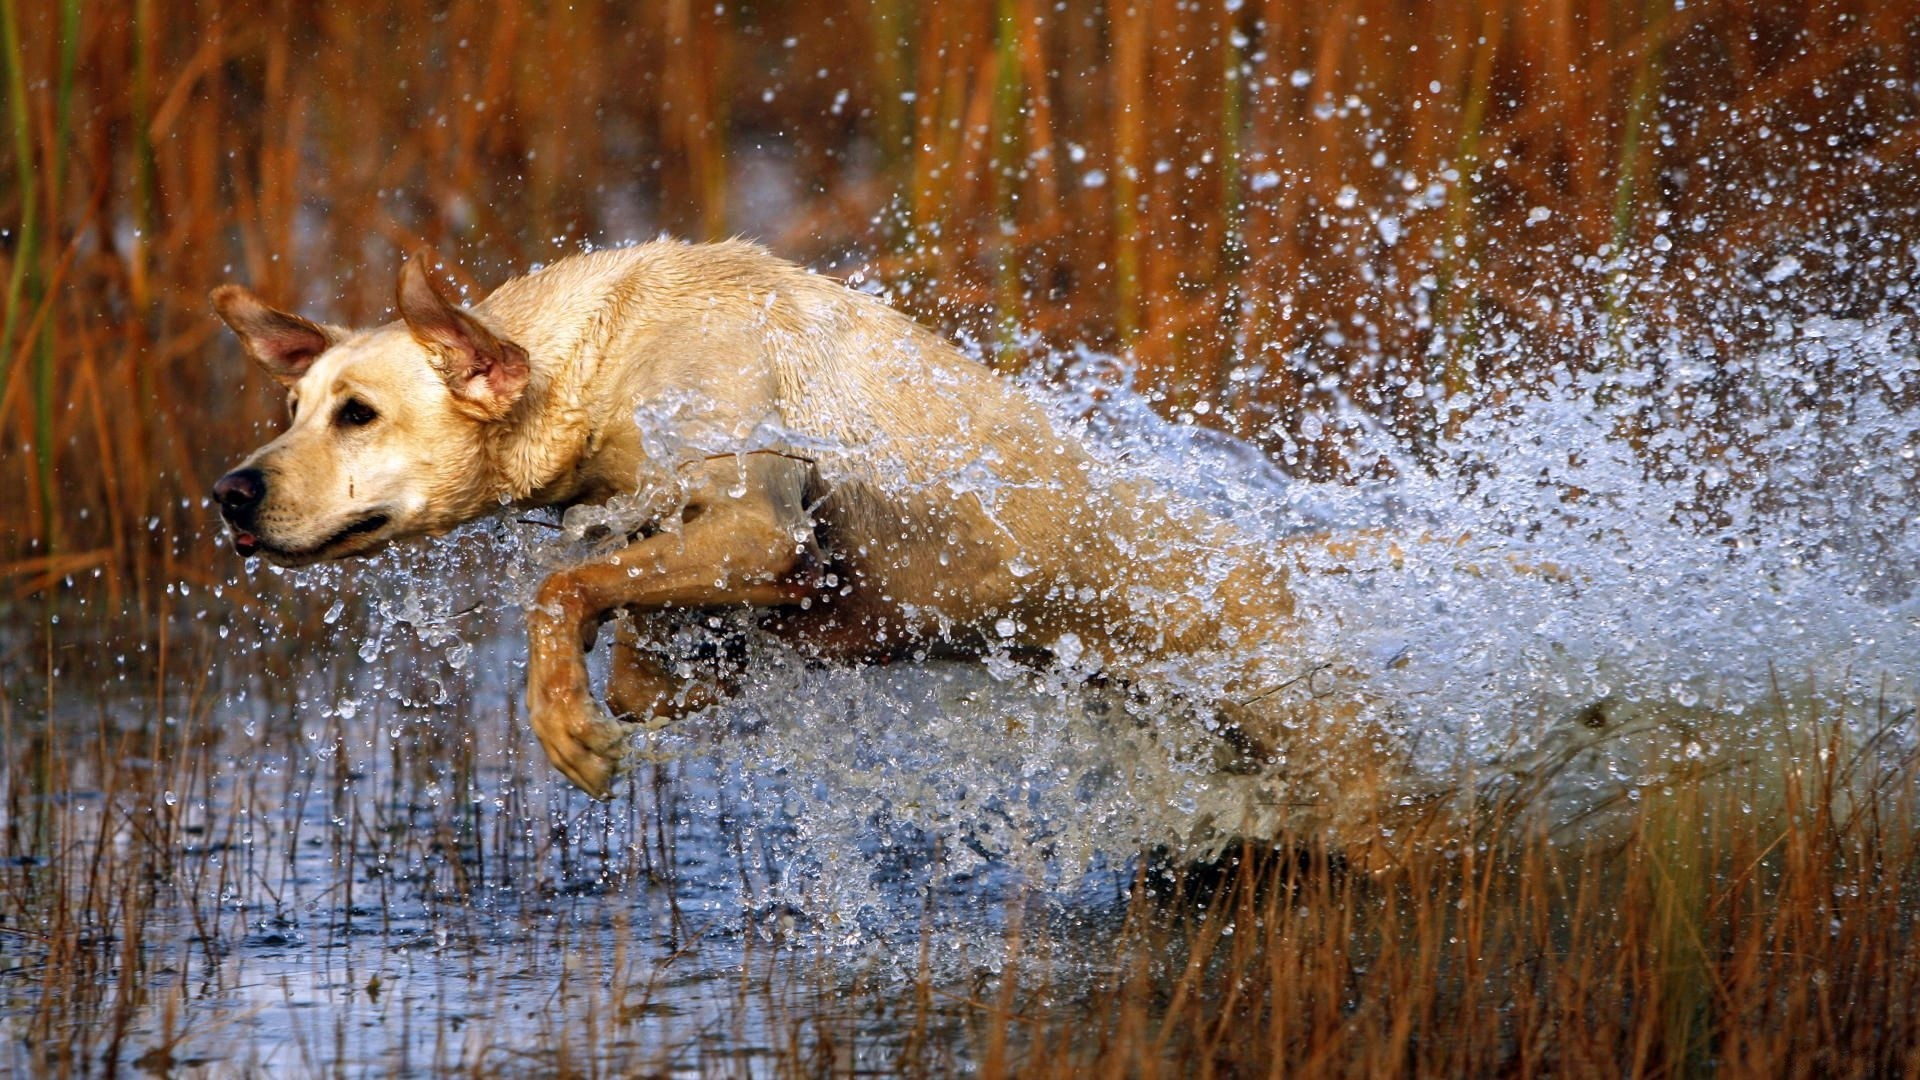 Hunting dog running after prey